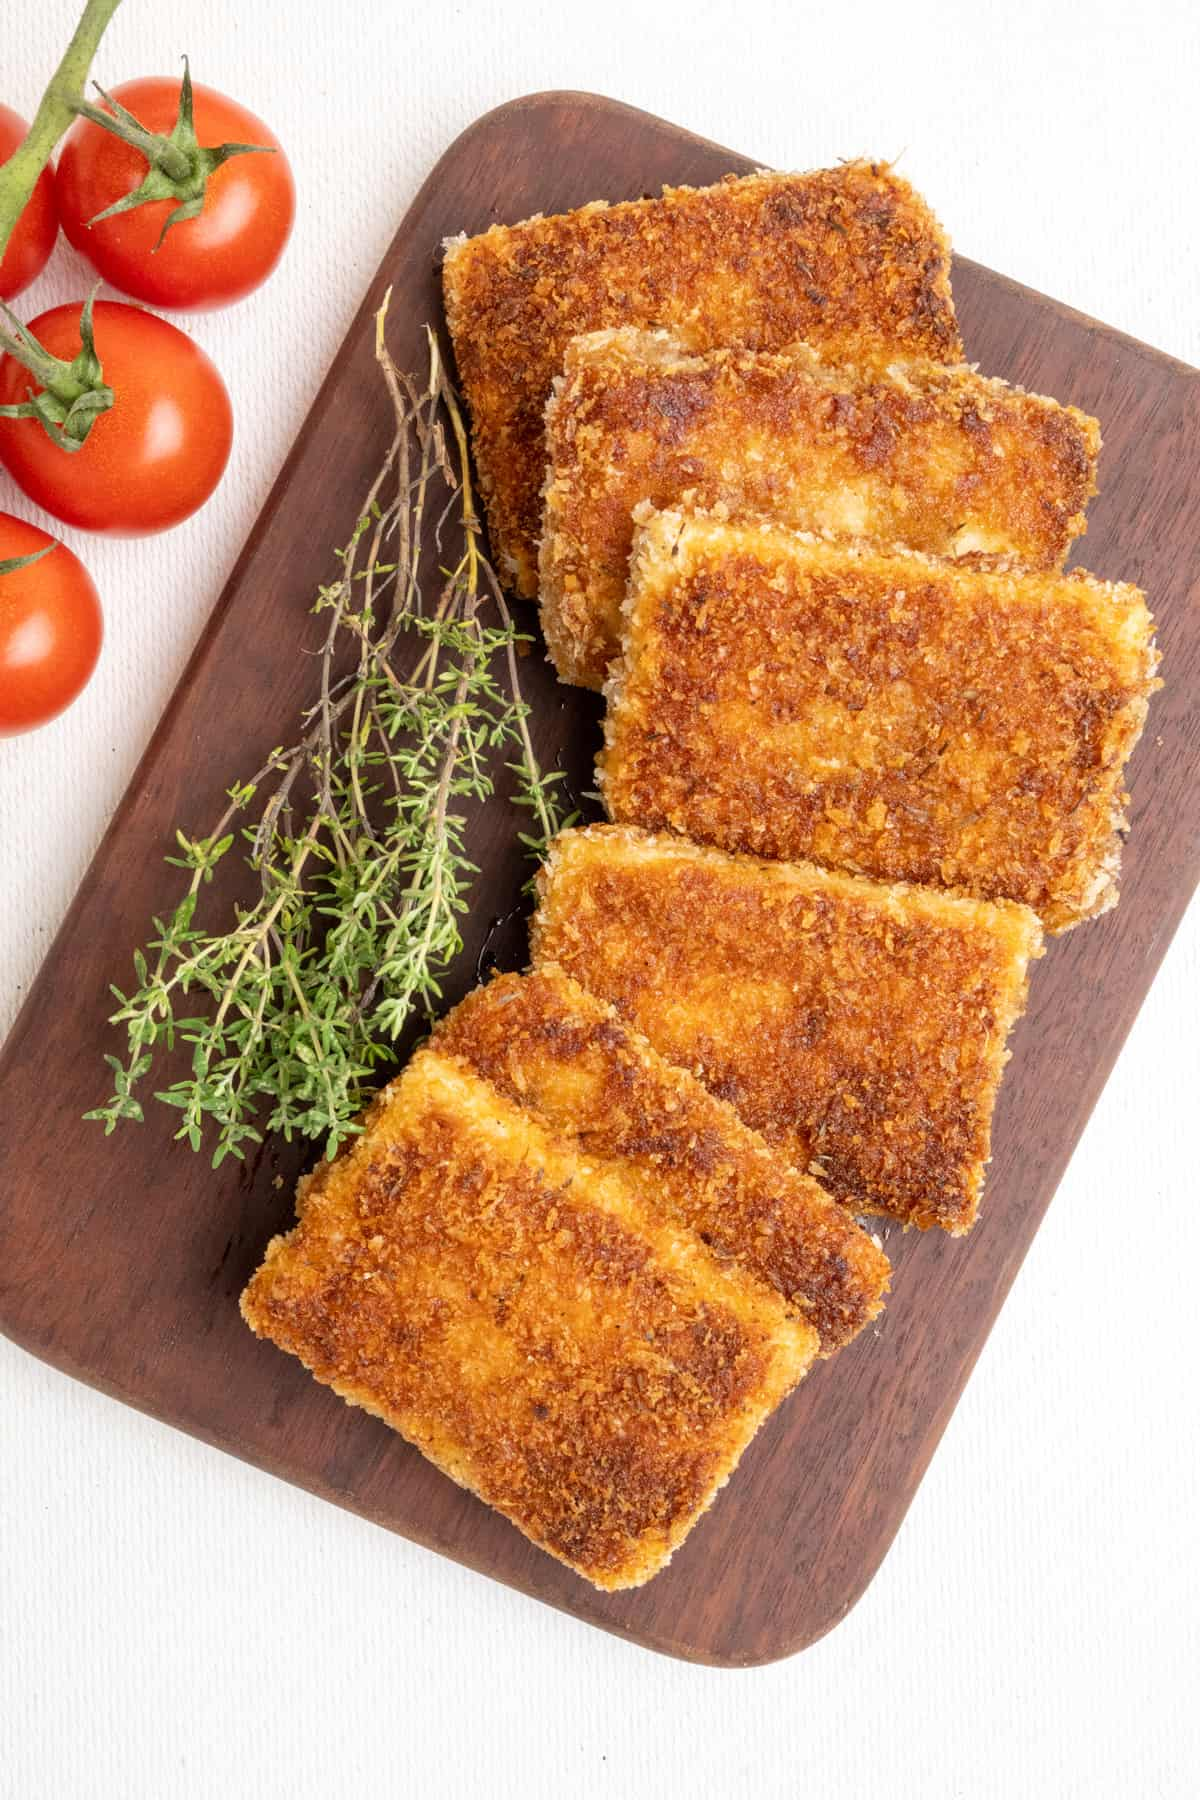 Rectangular slices of breaded and fried tofu arranged on a dark wooden board.